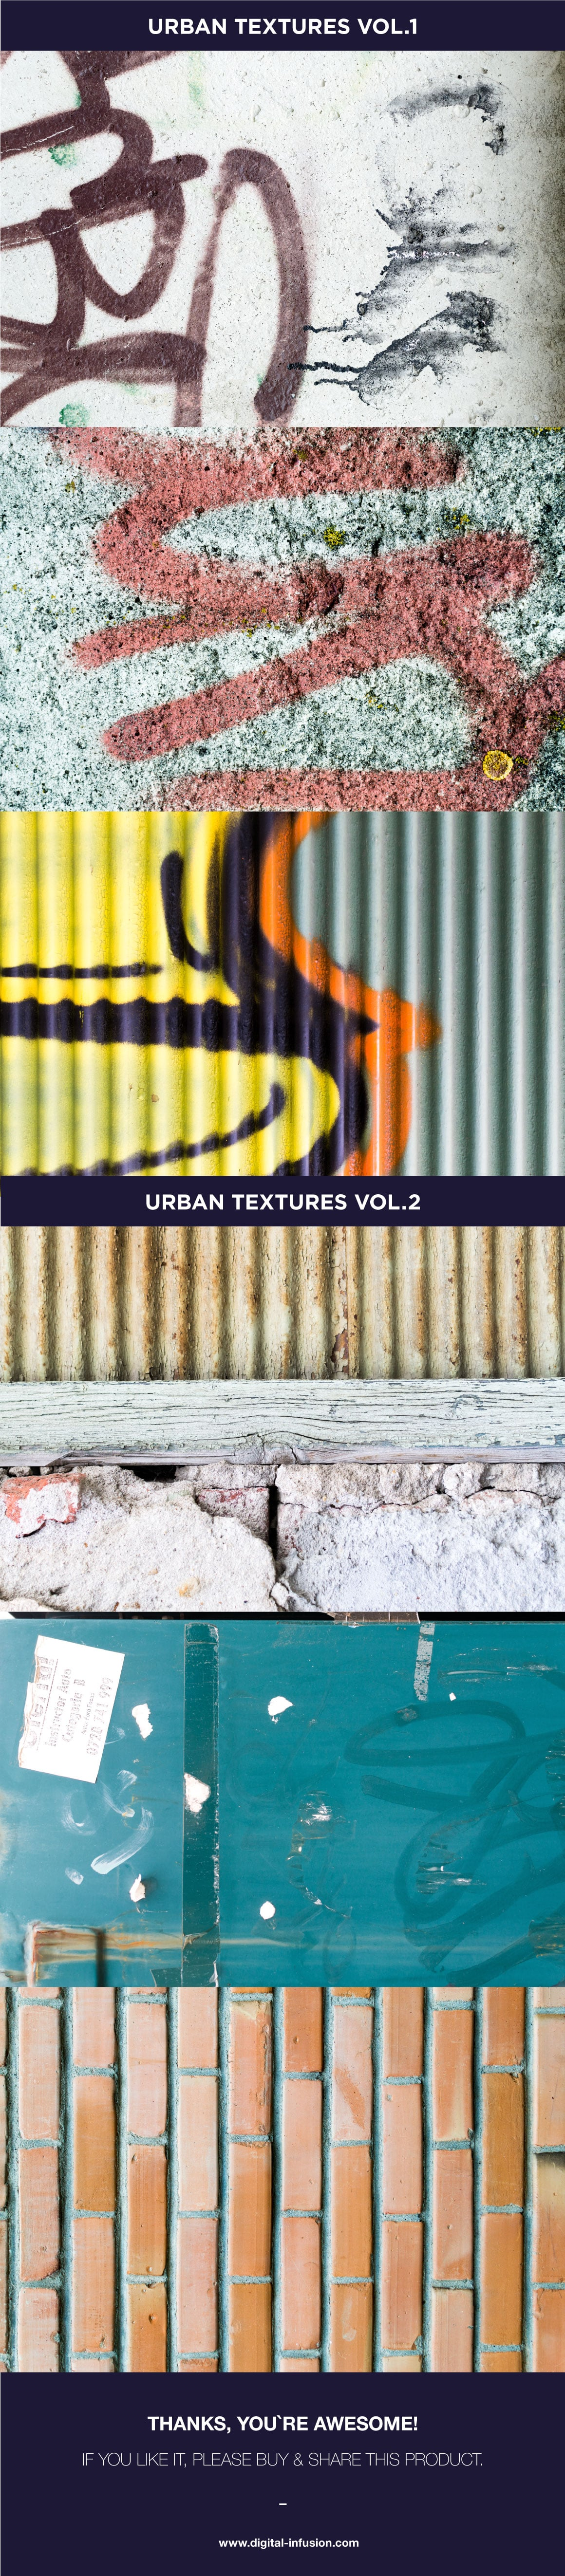 The Ultimate Texture Pack: 140+ files in 8 different collections. - full 3